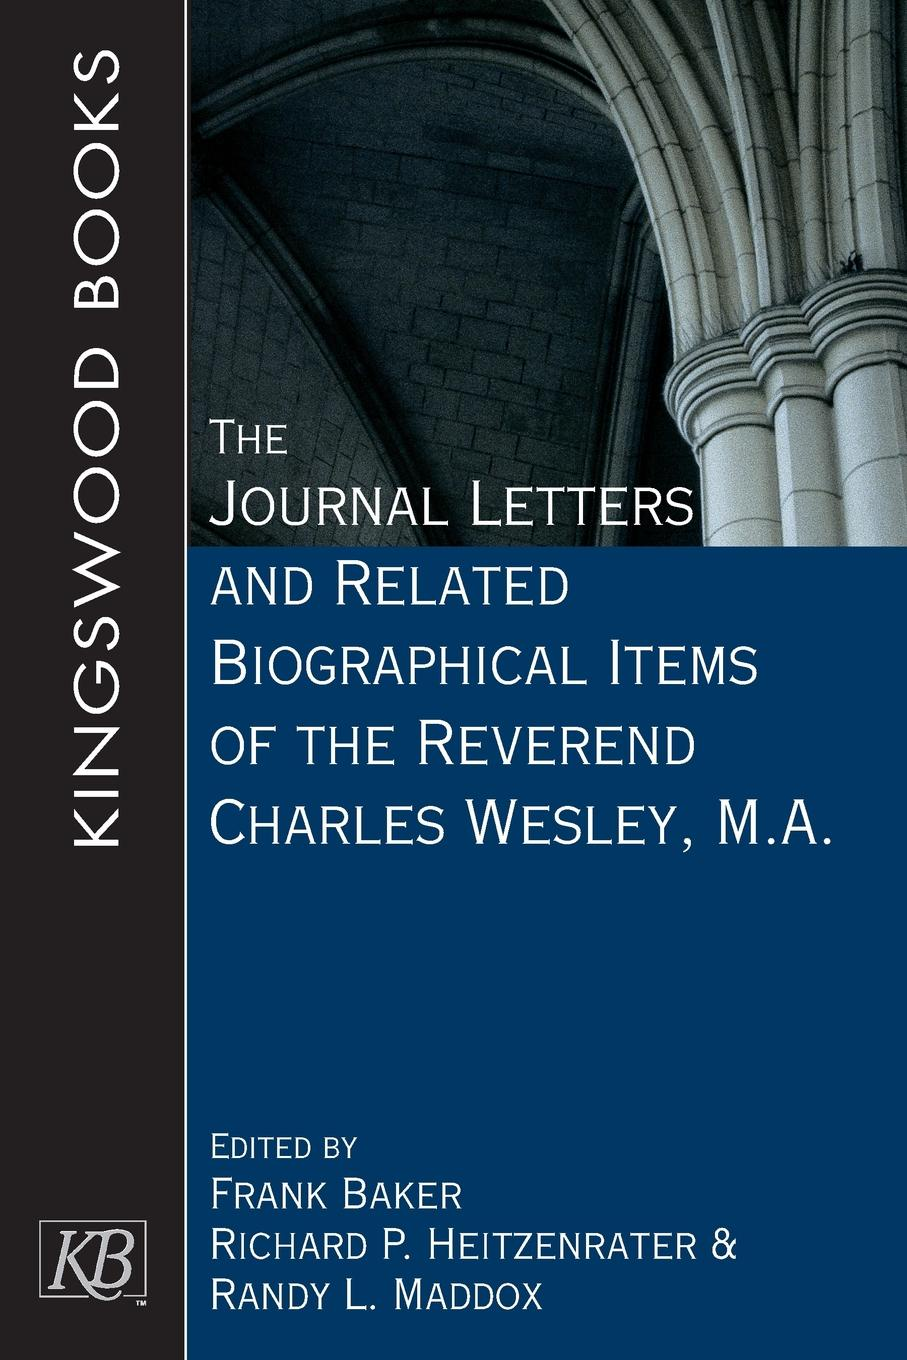 Journal Letters and Related Biographical Items of the Reverend Charles Wesley, M.A. love christopher charles scriptural latin plays of the renaissance and milton s cambridge manuscript